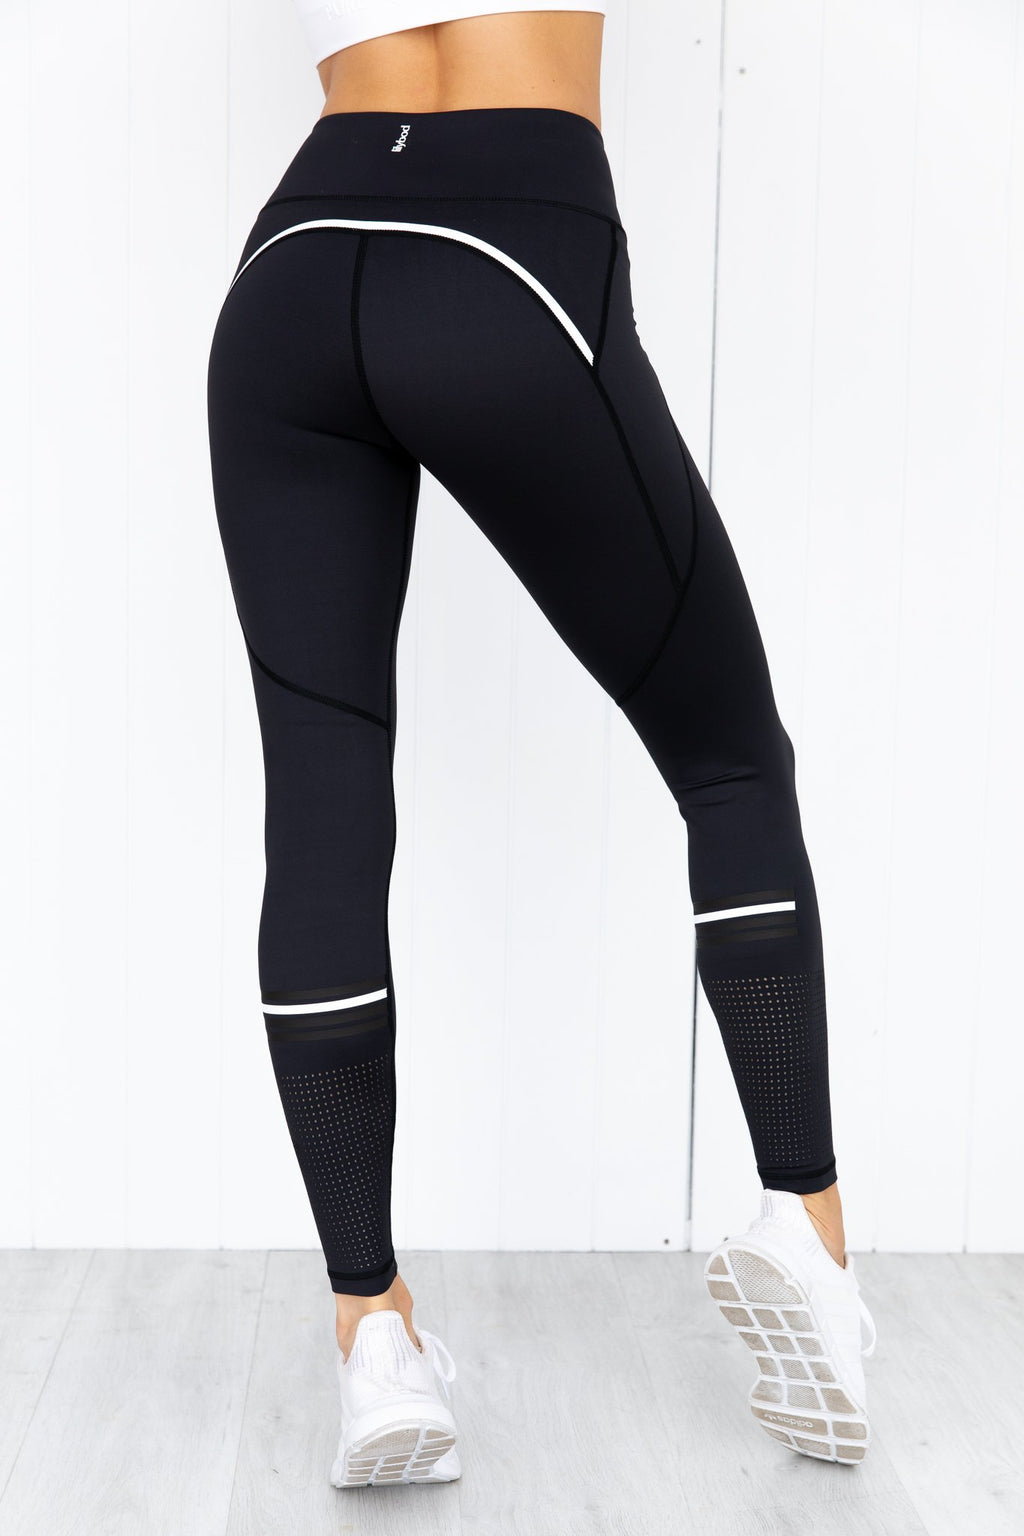 Colette Tarmac Black Leggings